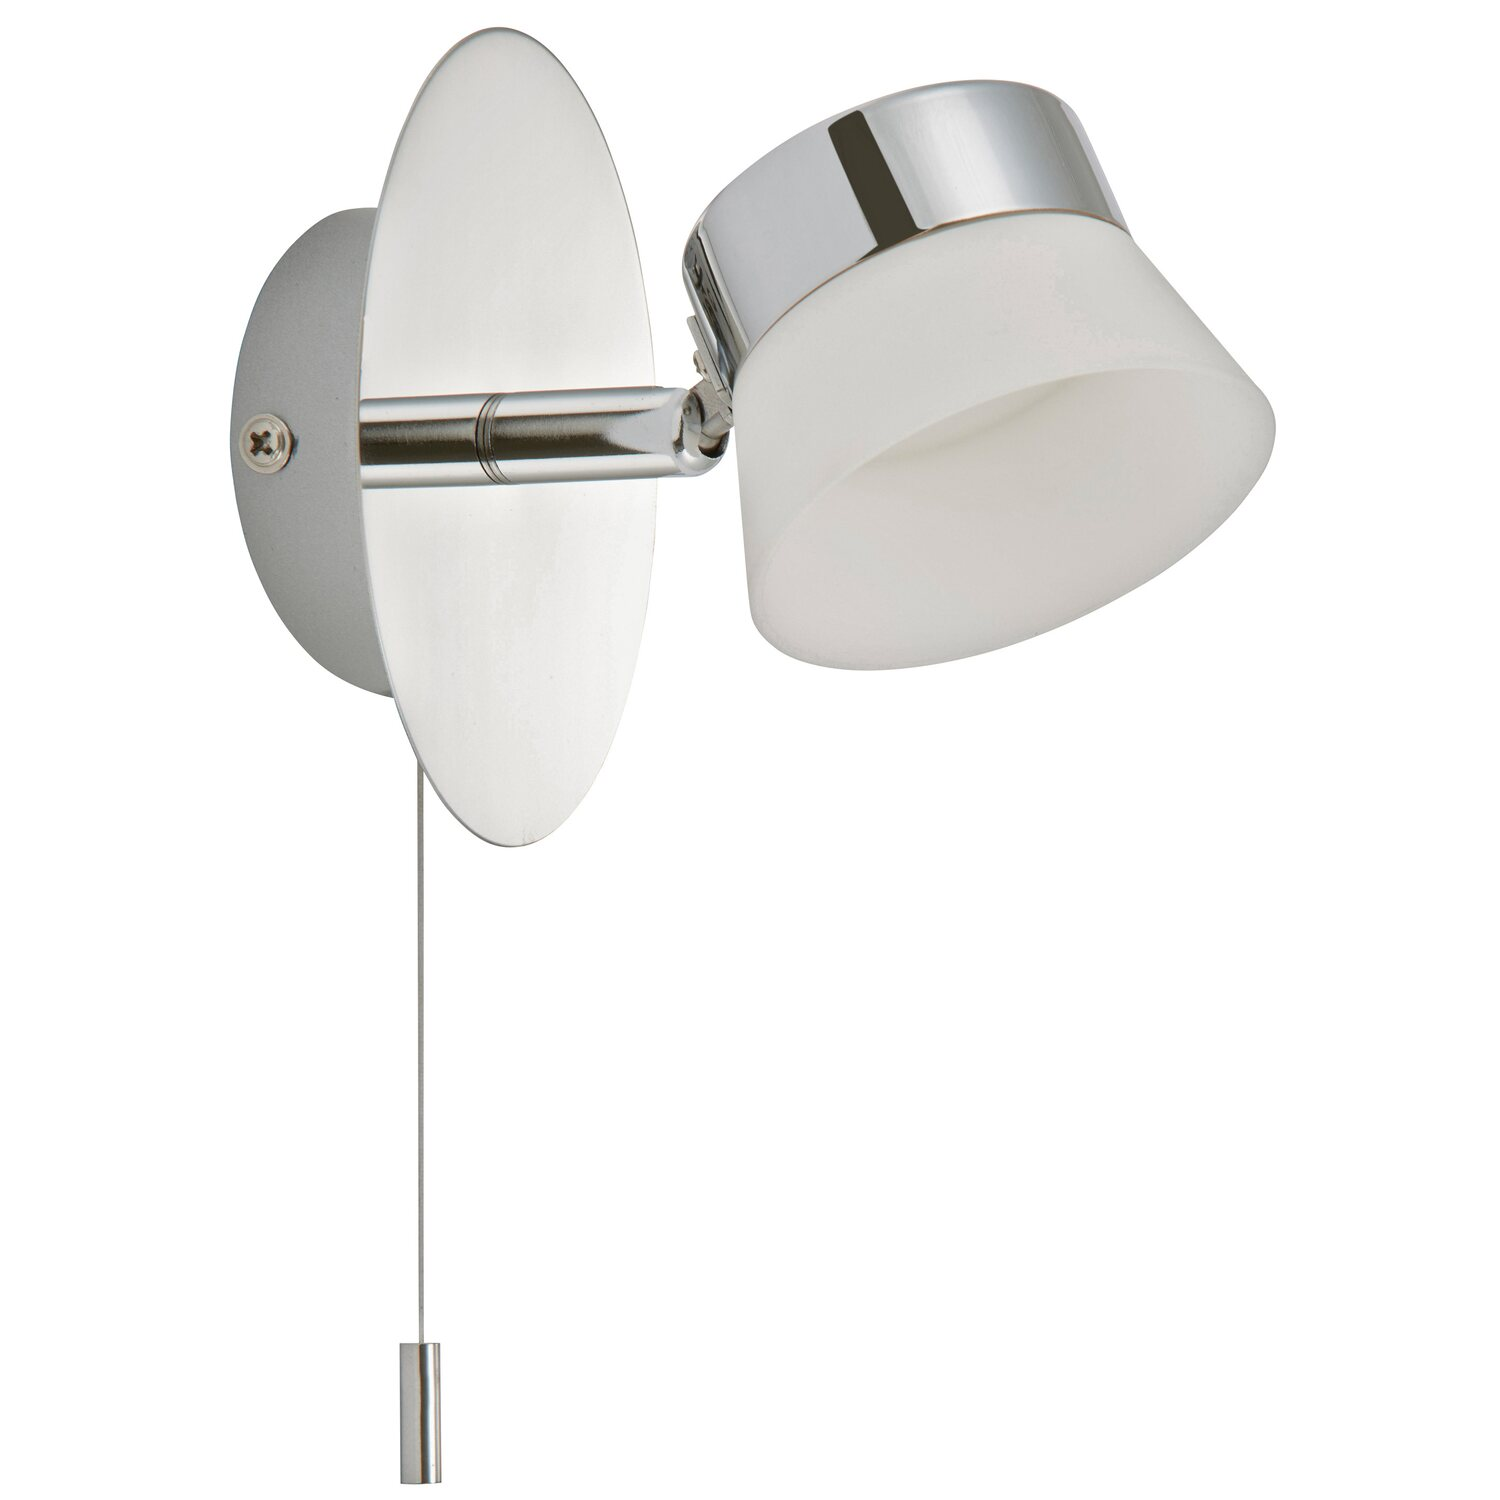 Briloner Briloner LED-Bad-Wandleuchte Surfline IP 44 EEK: A - A+ Chrom